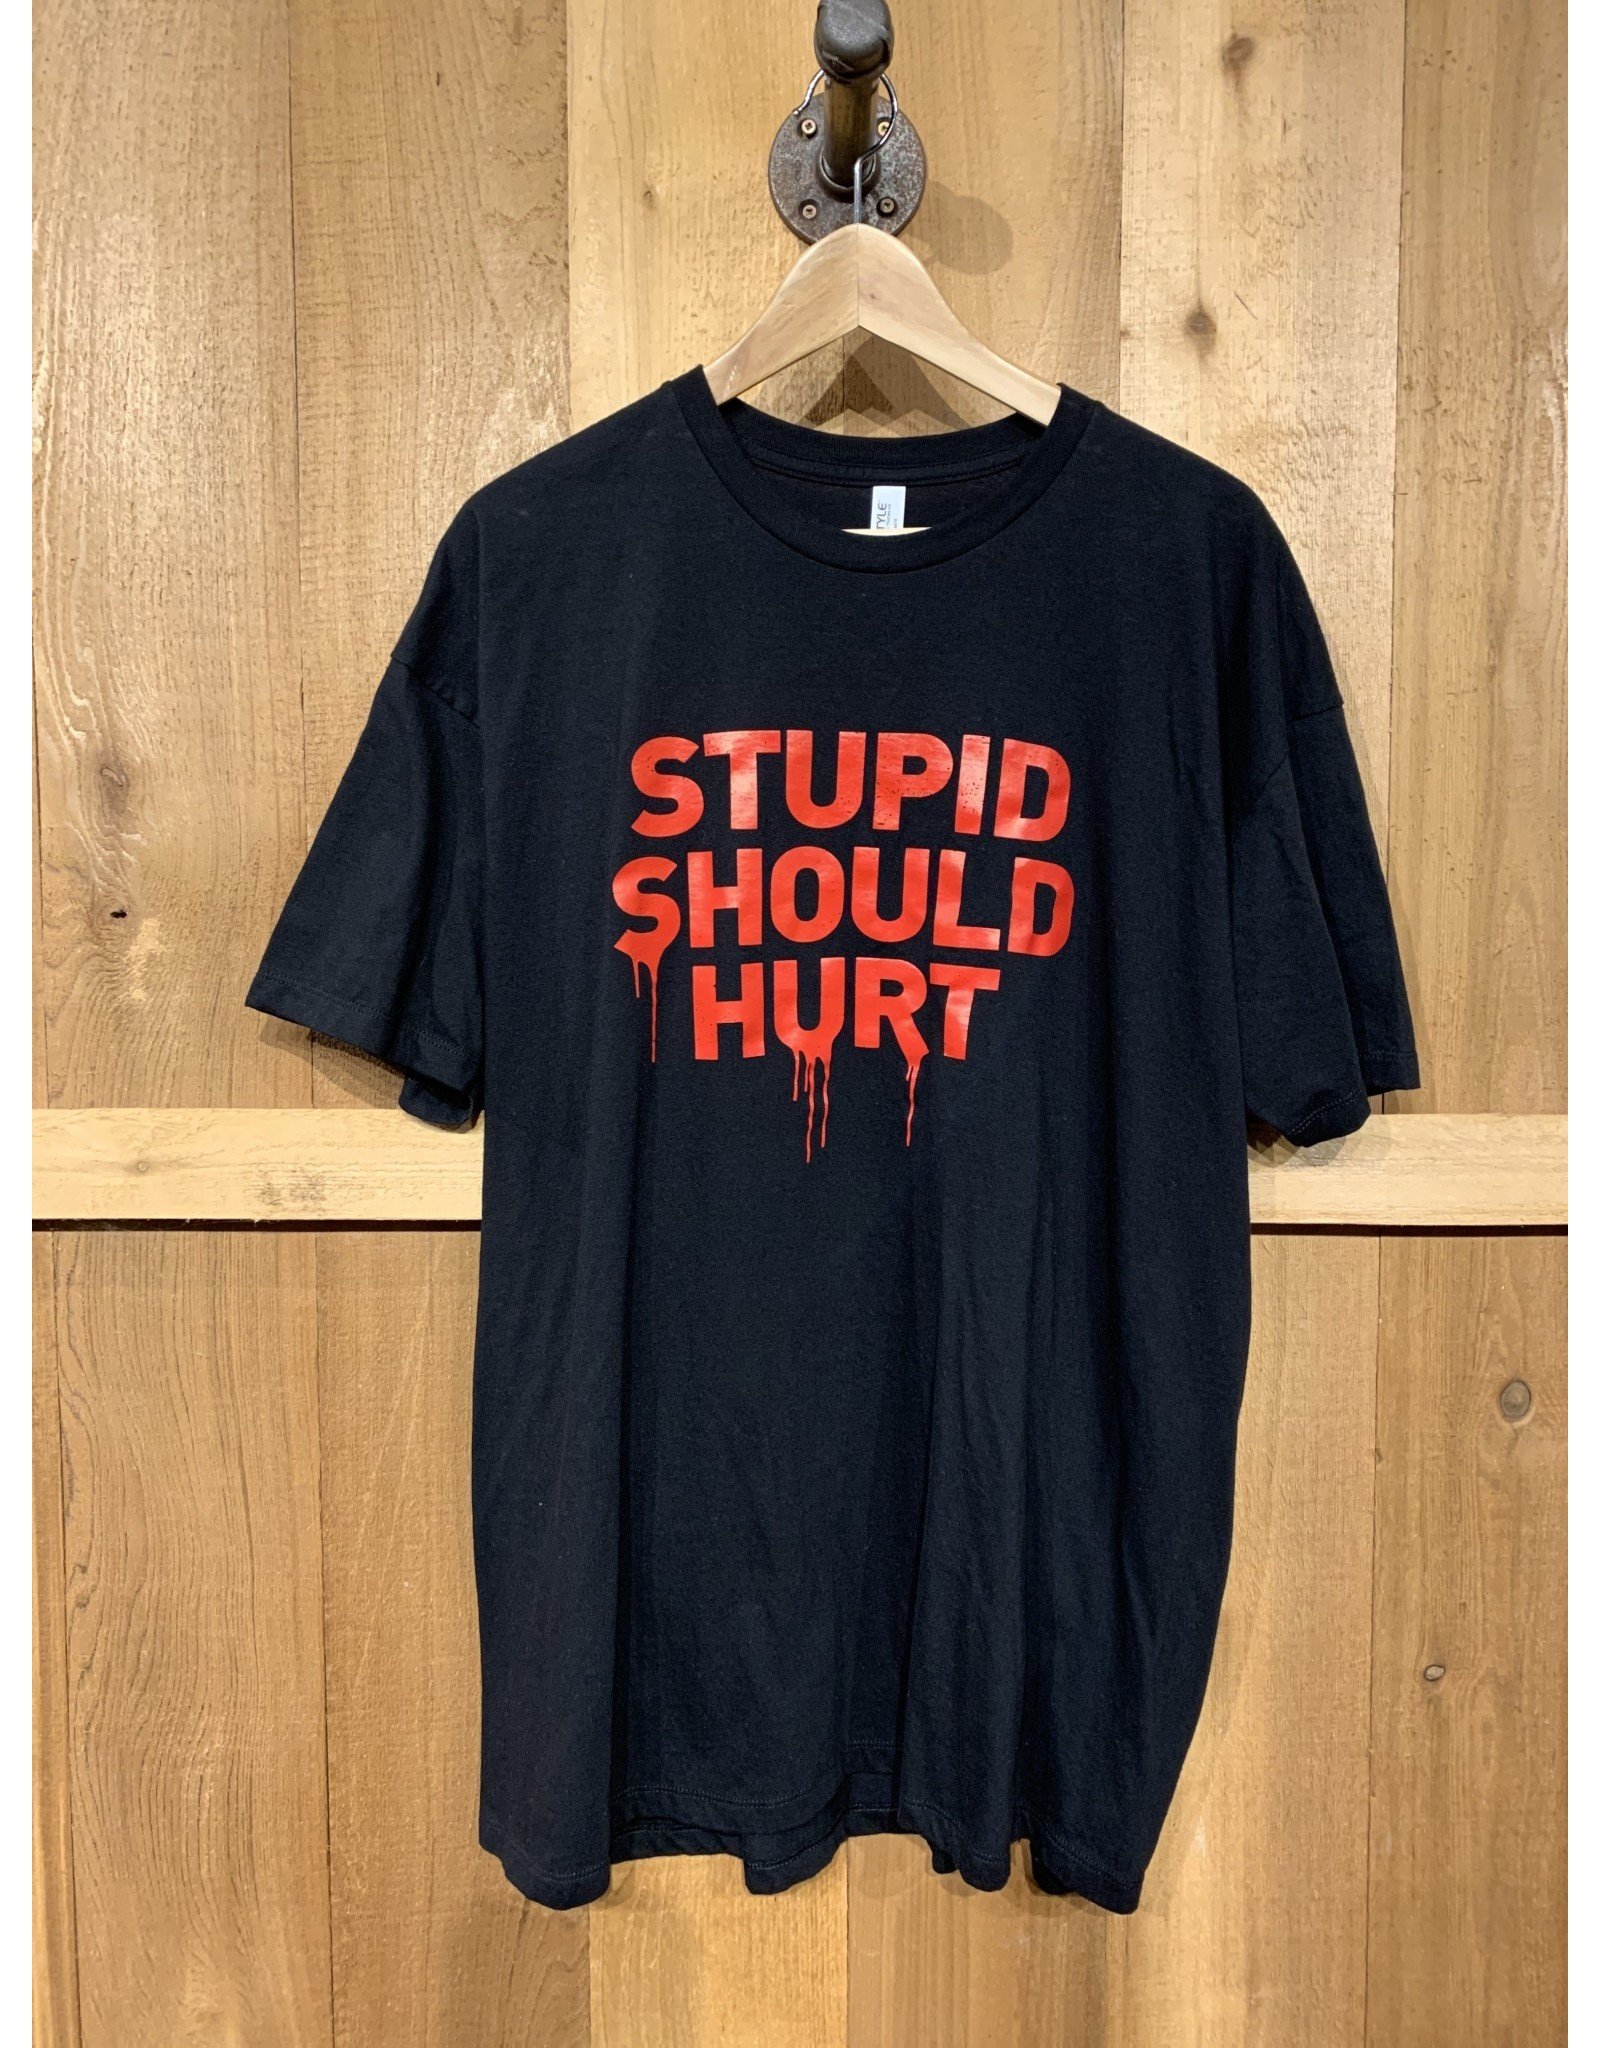 PRO STUPID SHOULD HURT T-SHIRT